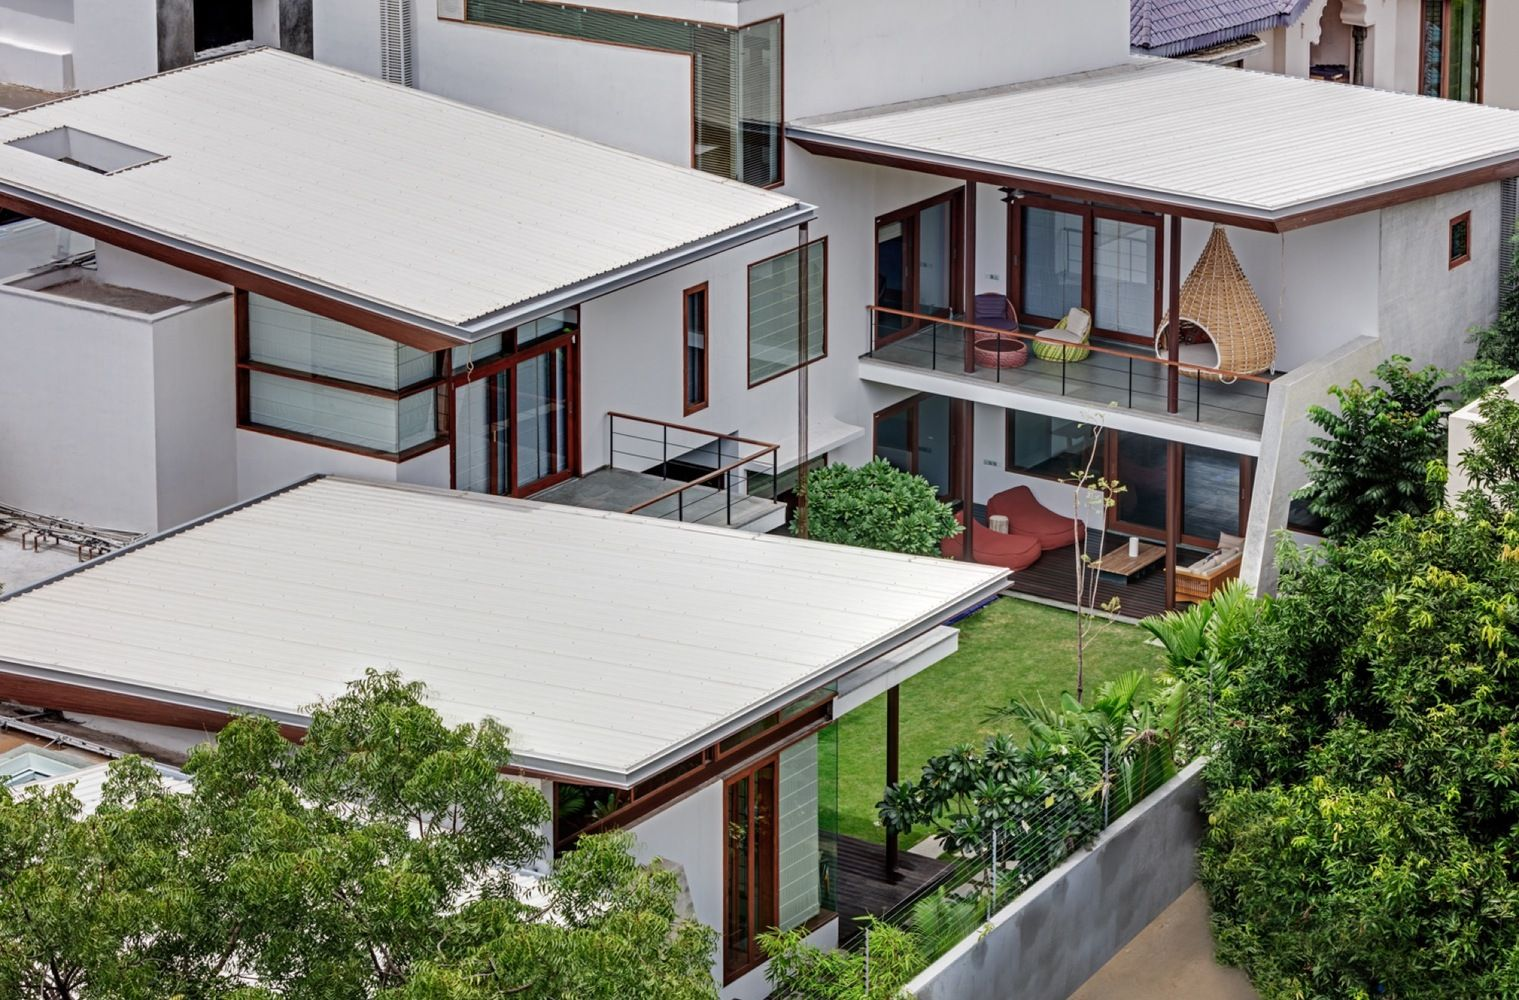 Gallery Of House 1058 Khosla Associates 1 Architecture House With Balcony House